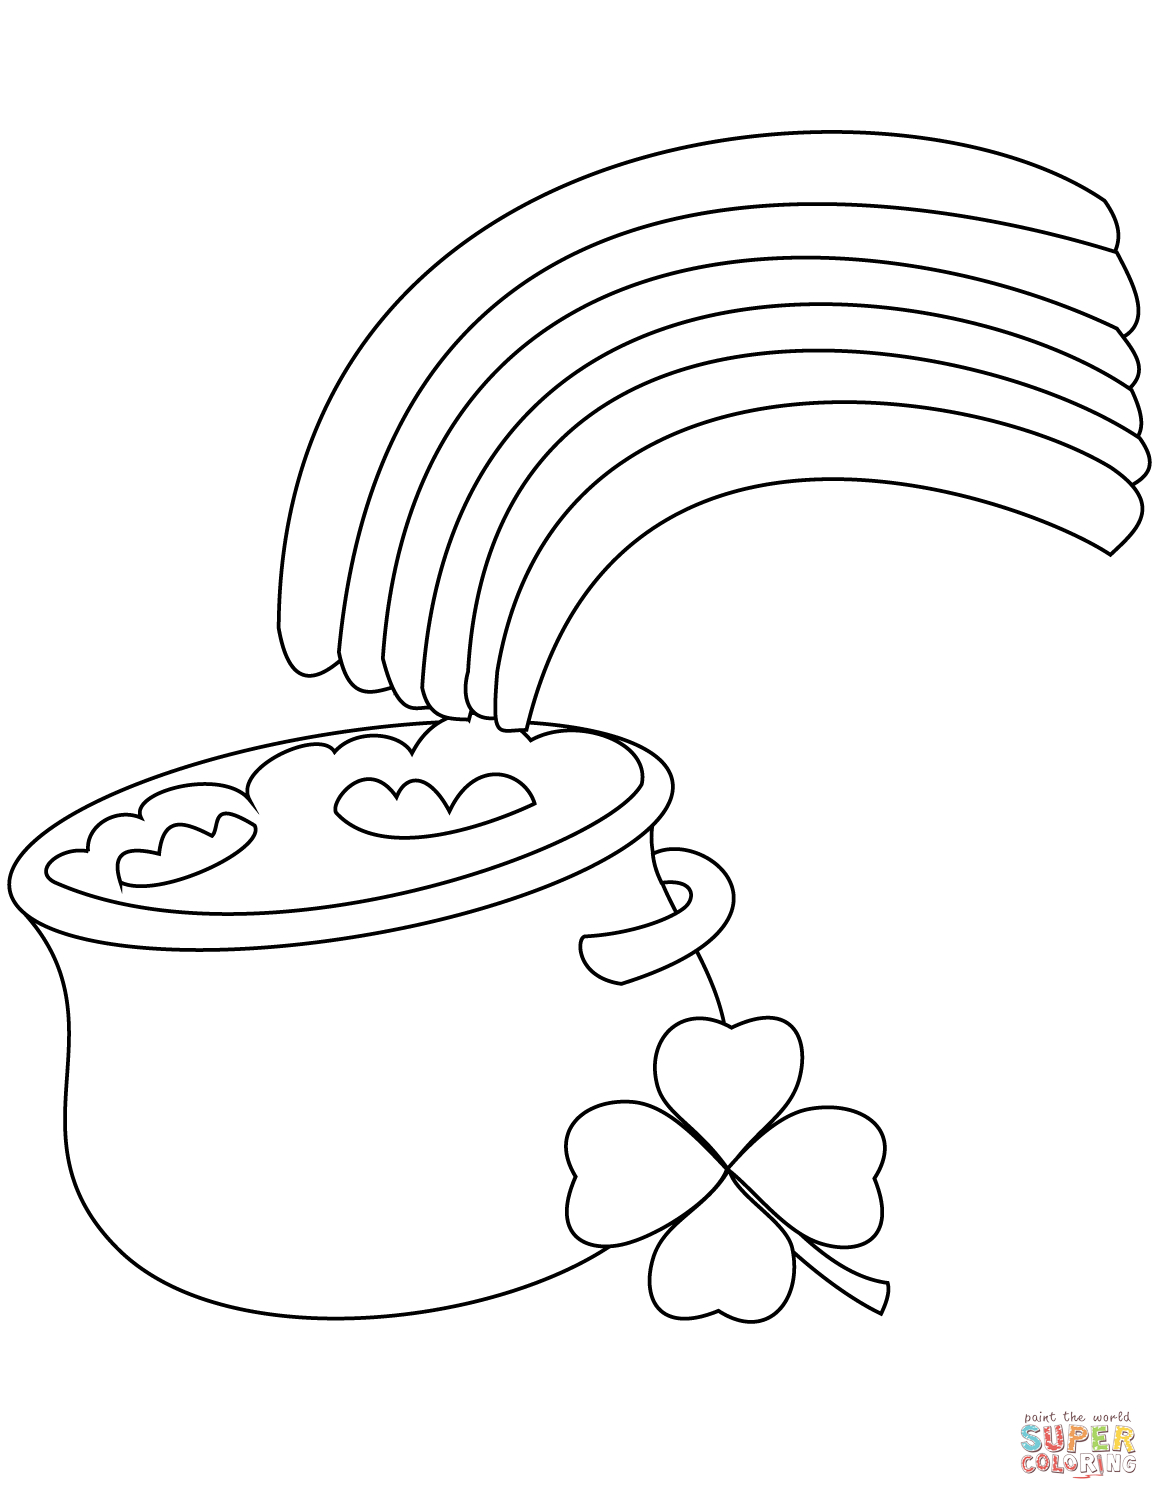 Rainbow And Pot Of Gold Coloring Page | Free Printable Coloring Pages - Pot Of Gold Template Free Printable